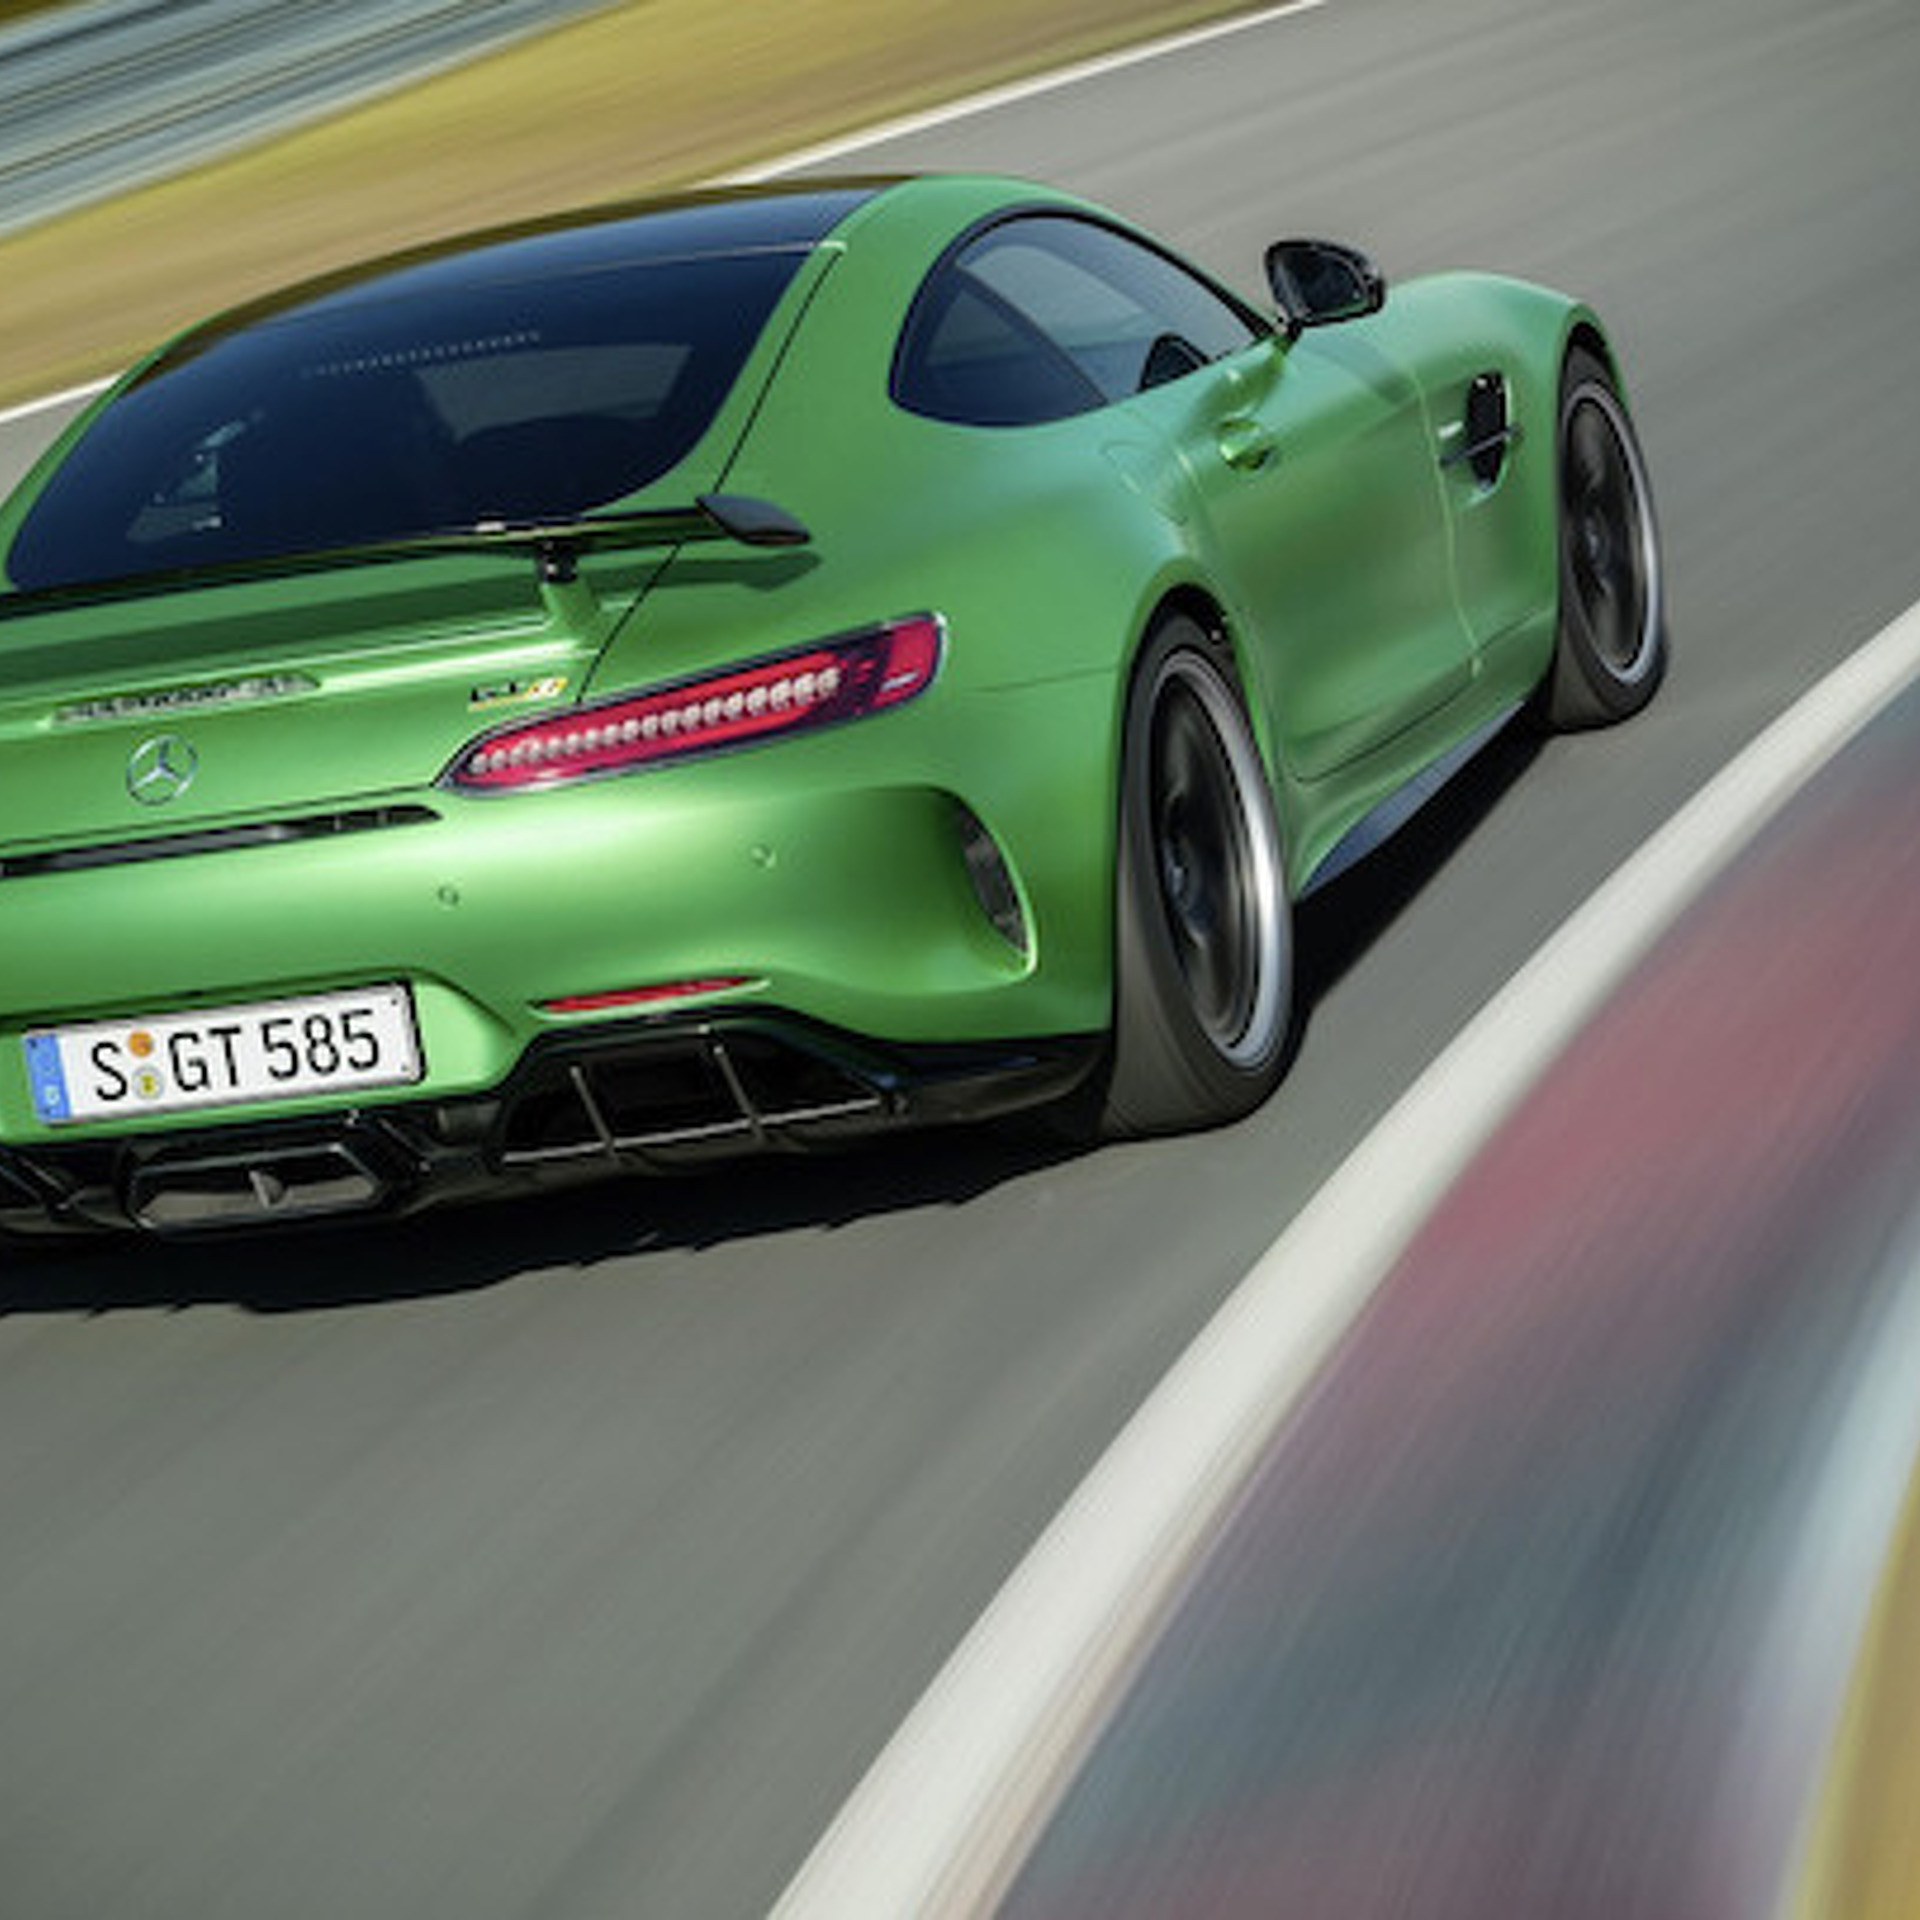 3 Emotions You'll Likely Experience in the 2017 Mercedes-AMG GT R